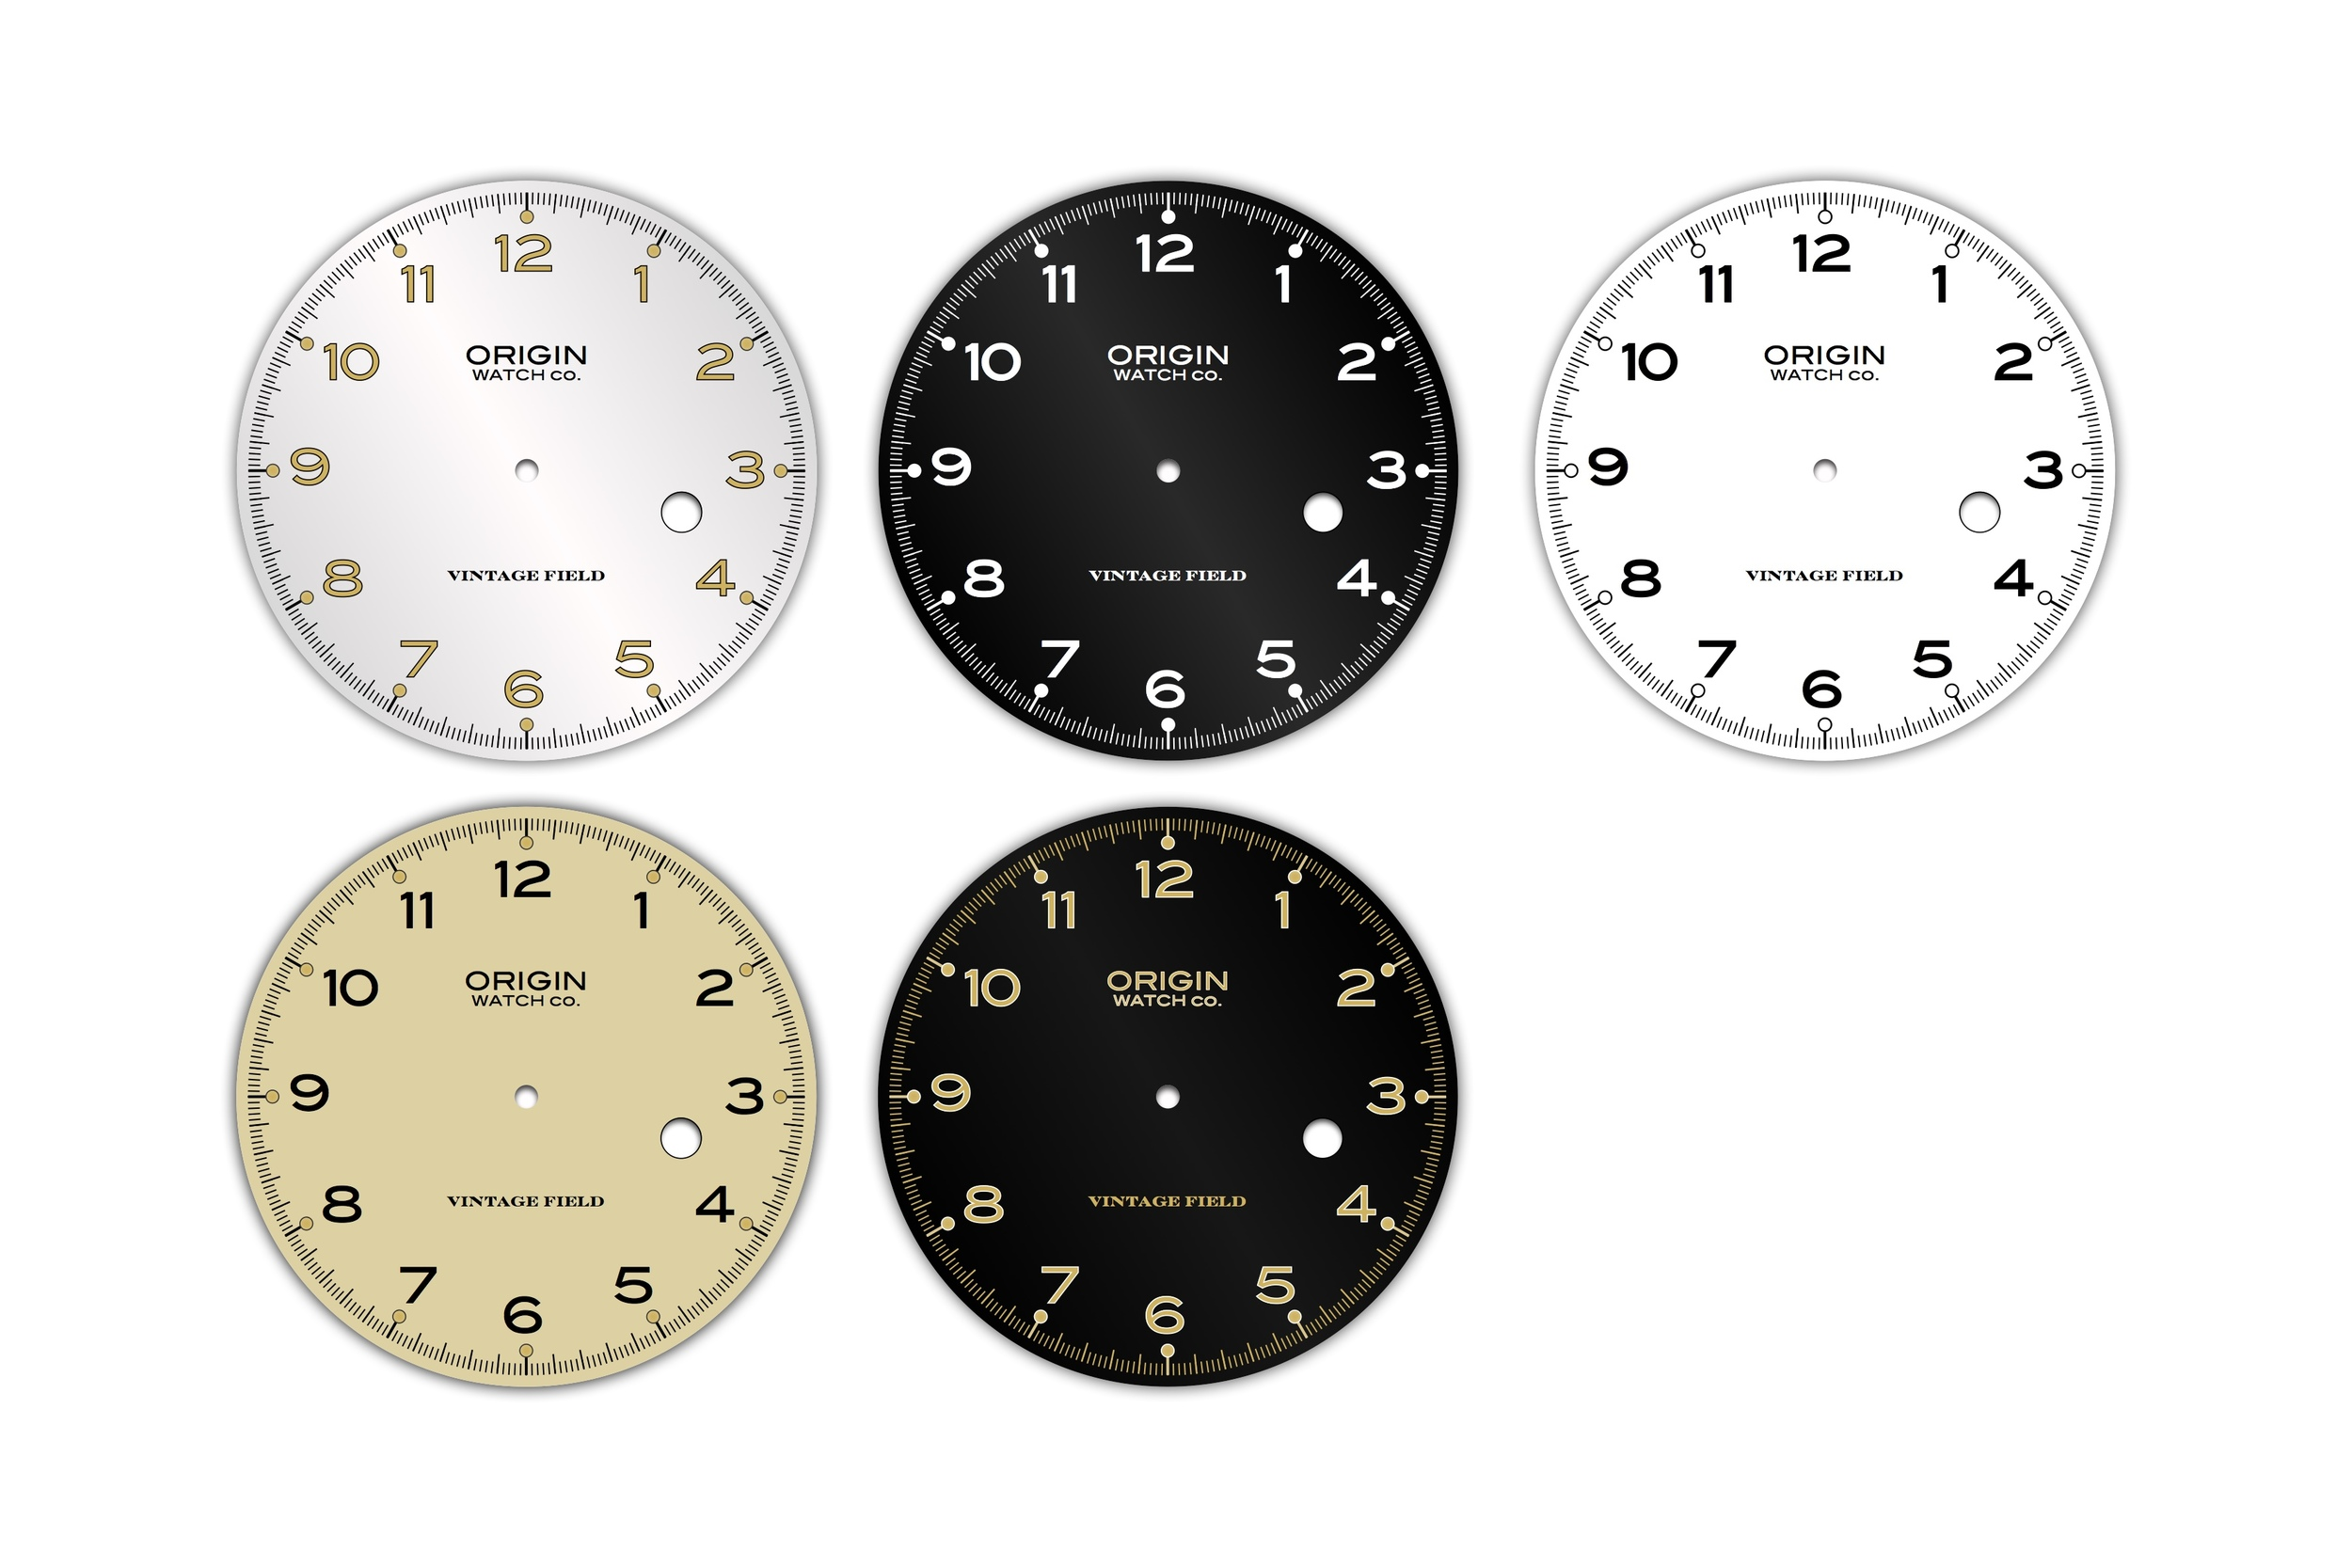 Vintage Field Date Dials for Automatic Movement